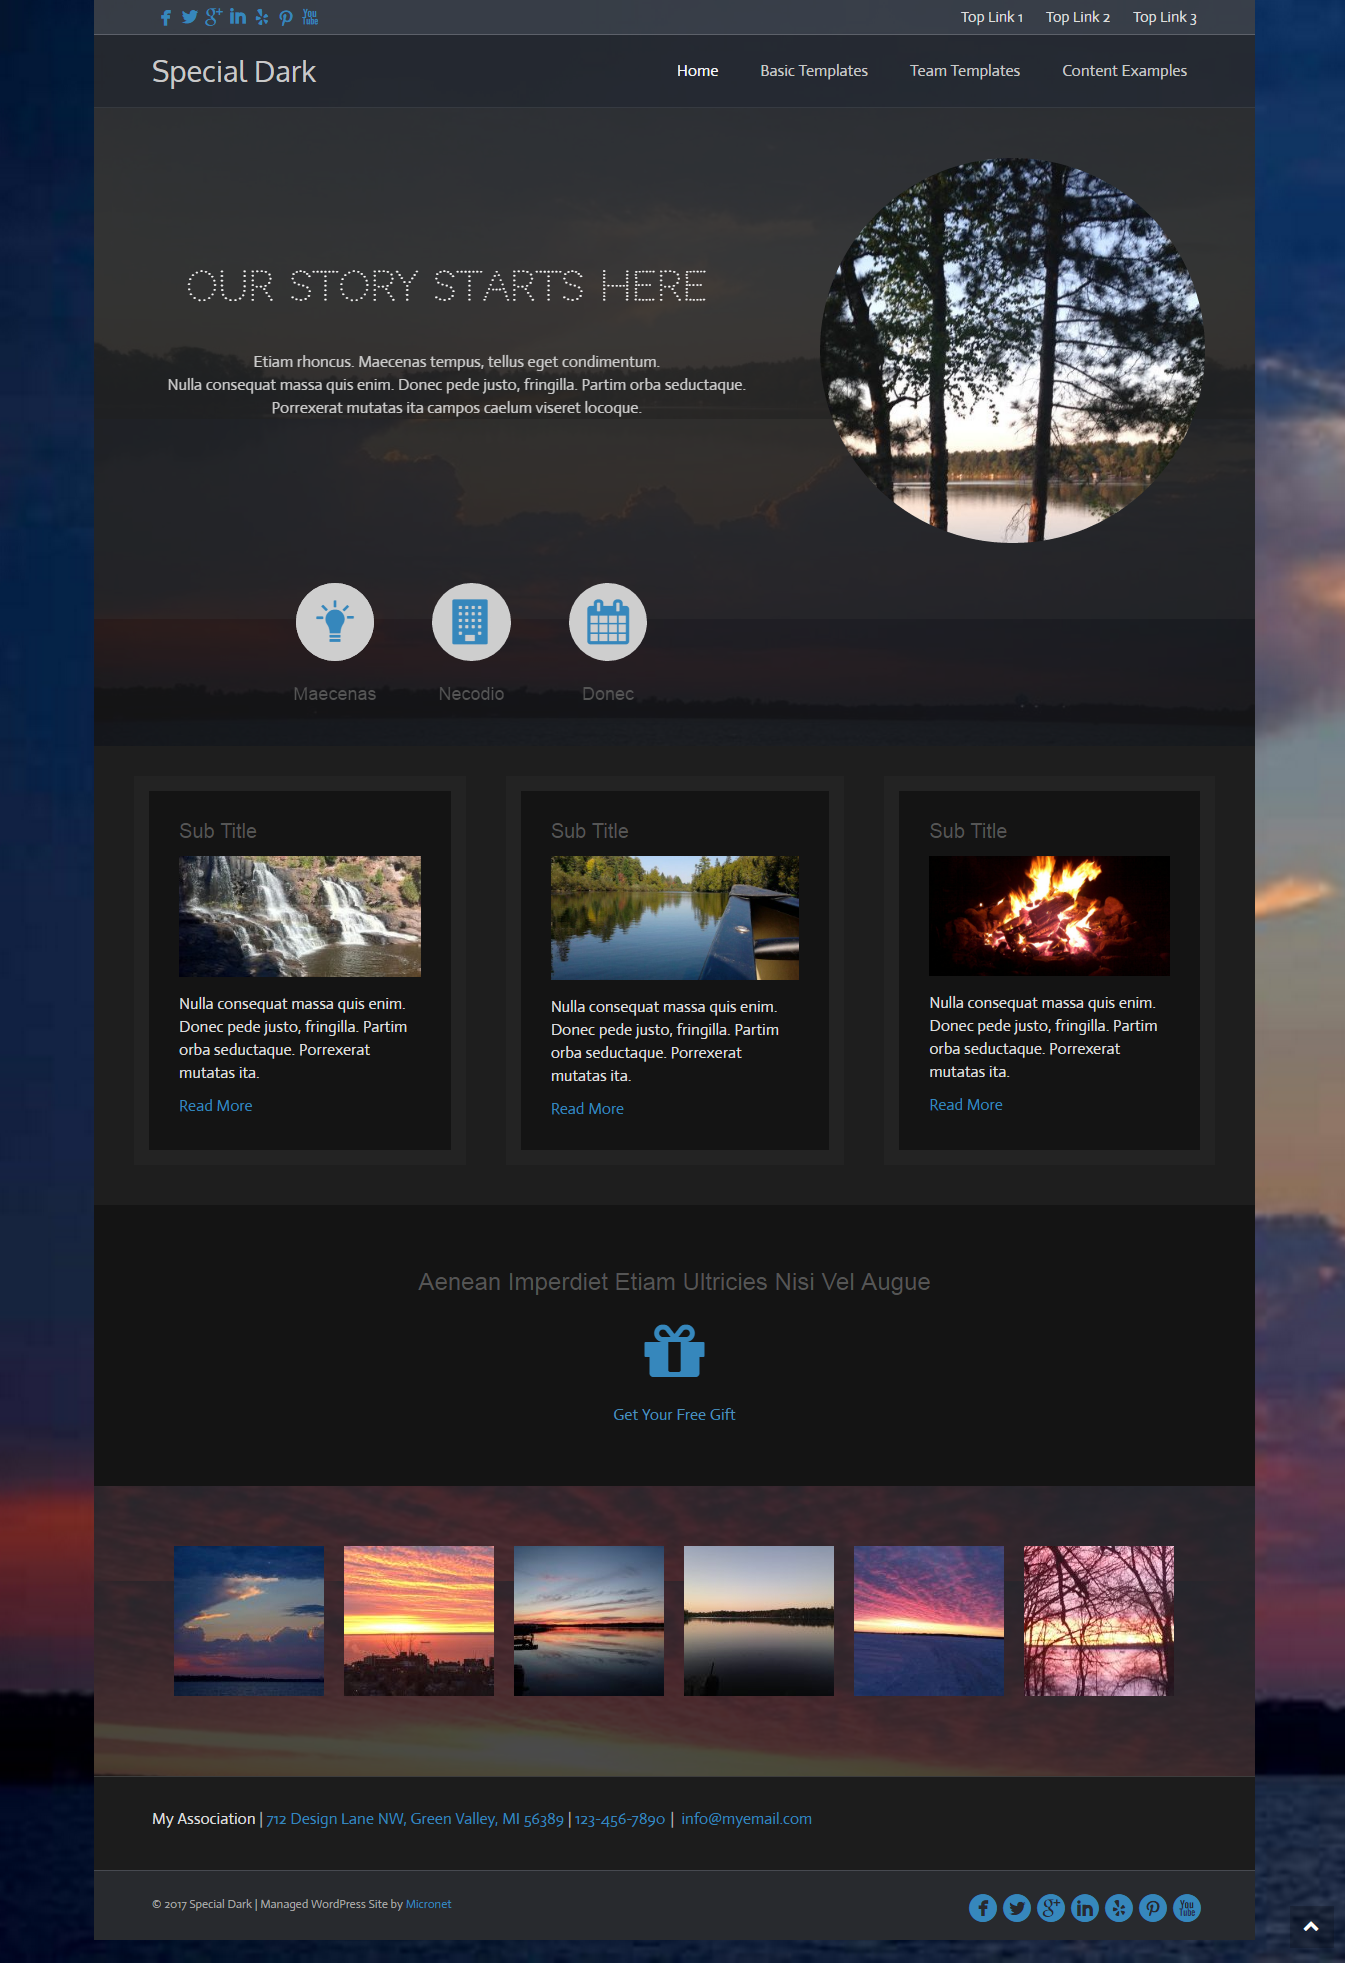 image of Chamber of Commerce Special Dark Website Design